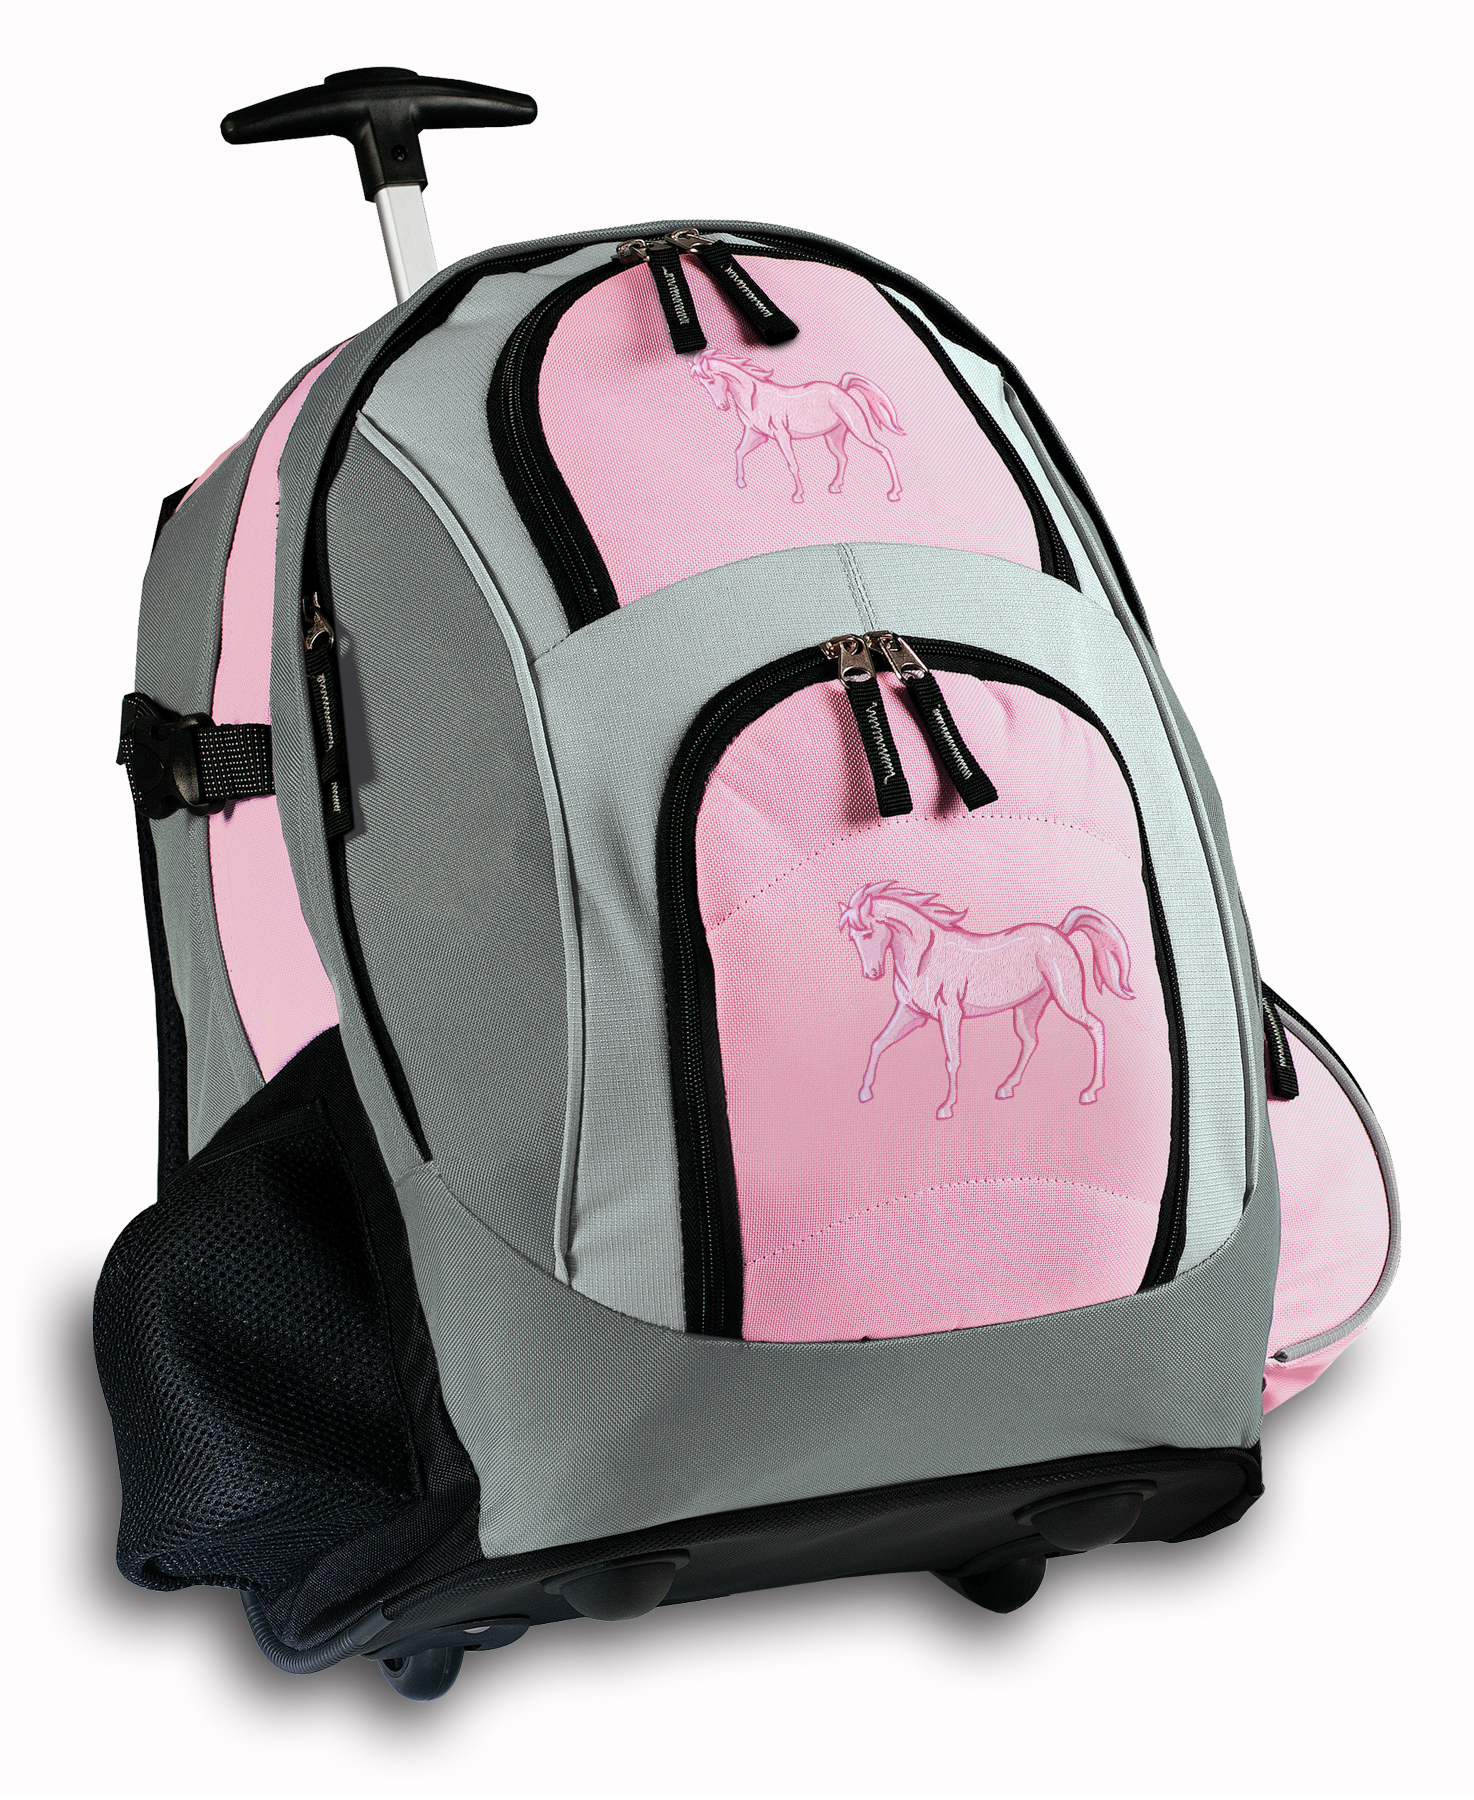 Girls Rolling Backpacks For School qJAFSgC8